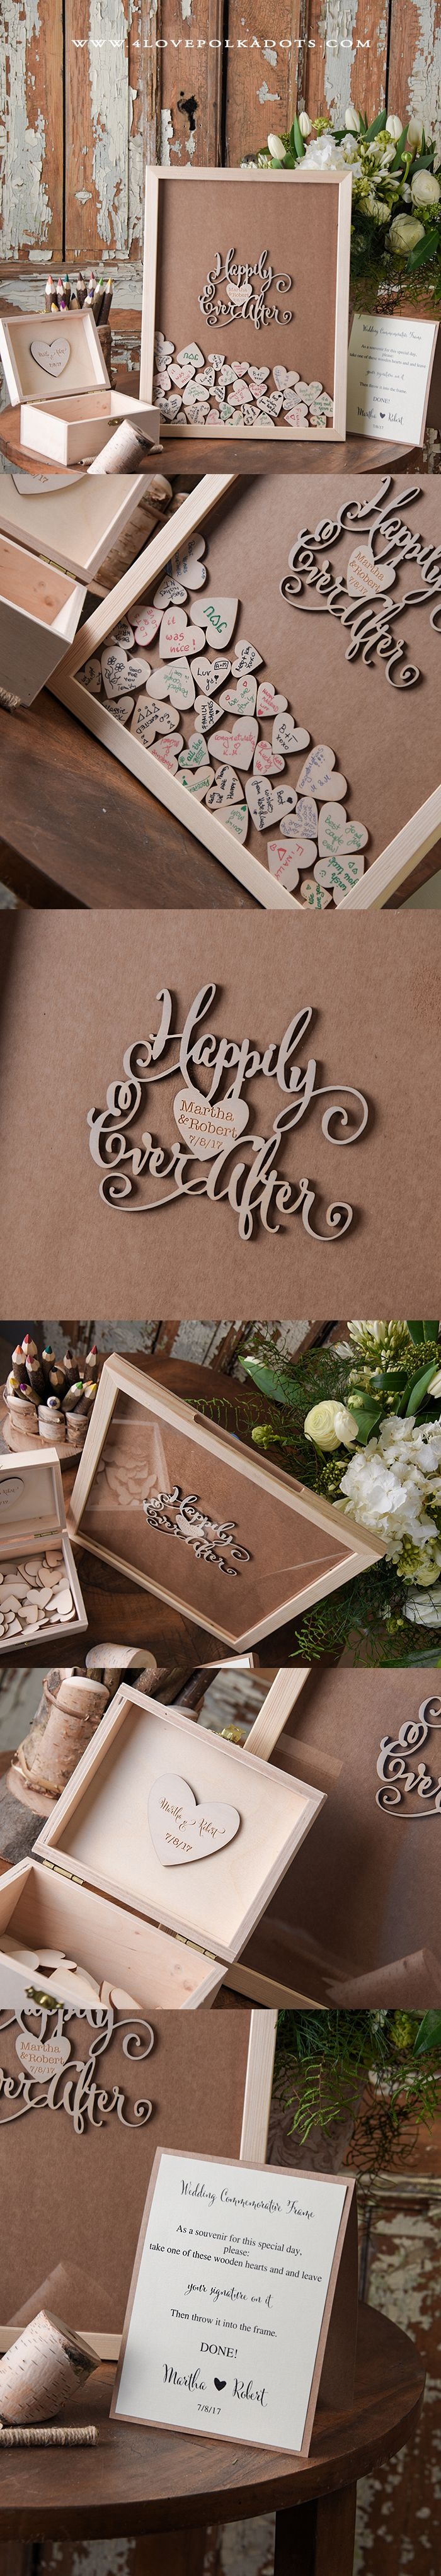 Happily Ever After ! Alternative Wooden Wedding Guest Book Frame #weddingideas #countrywedding #rustic #realwood